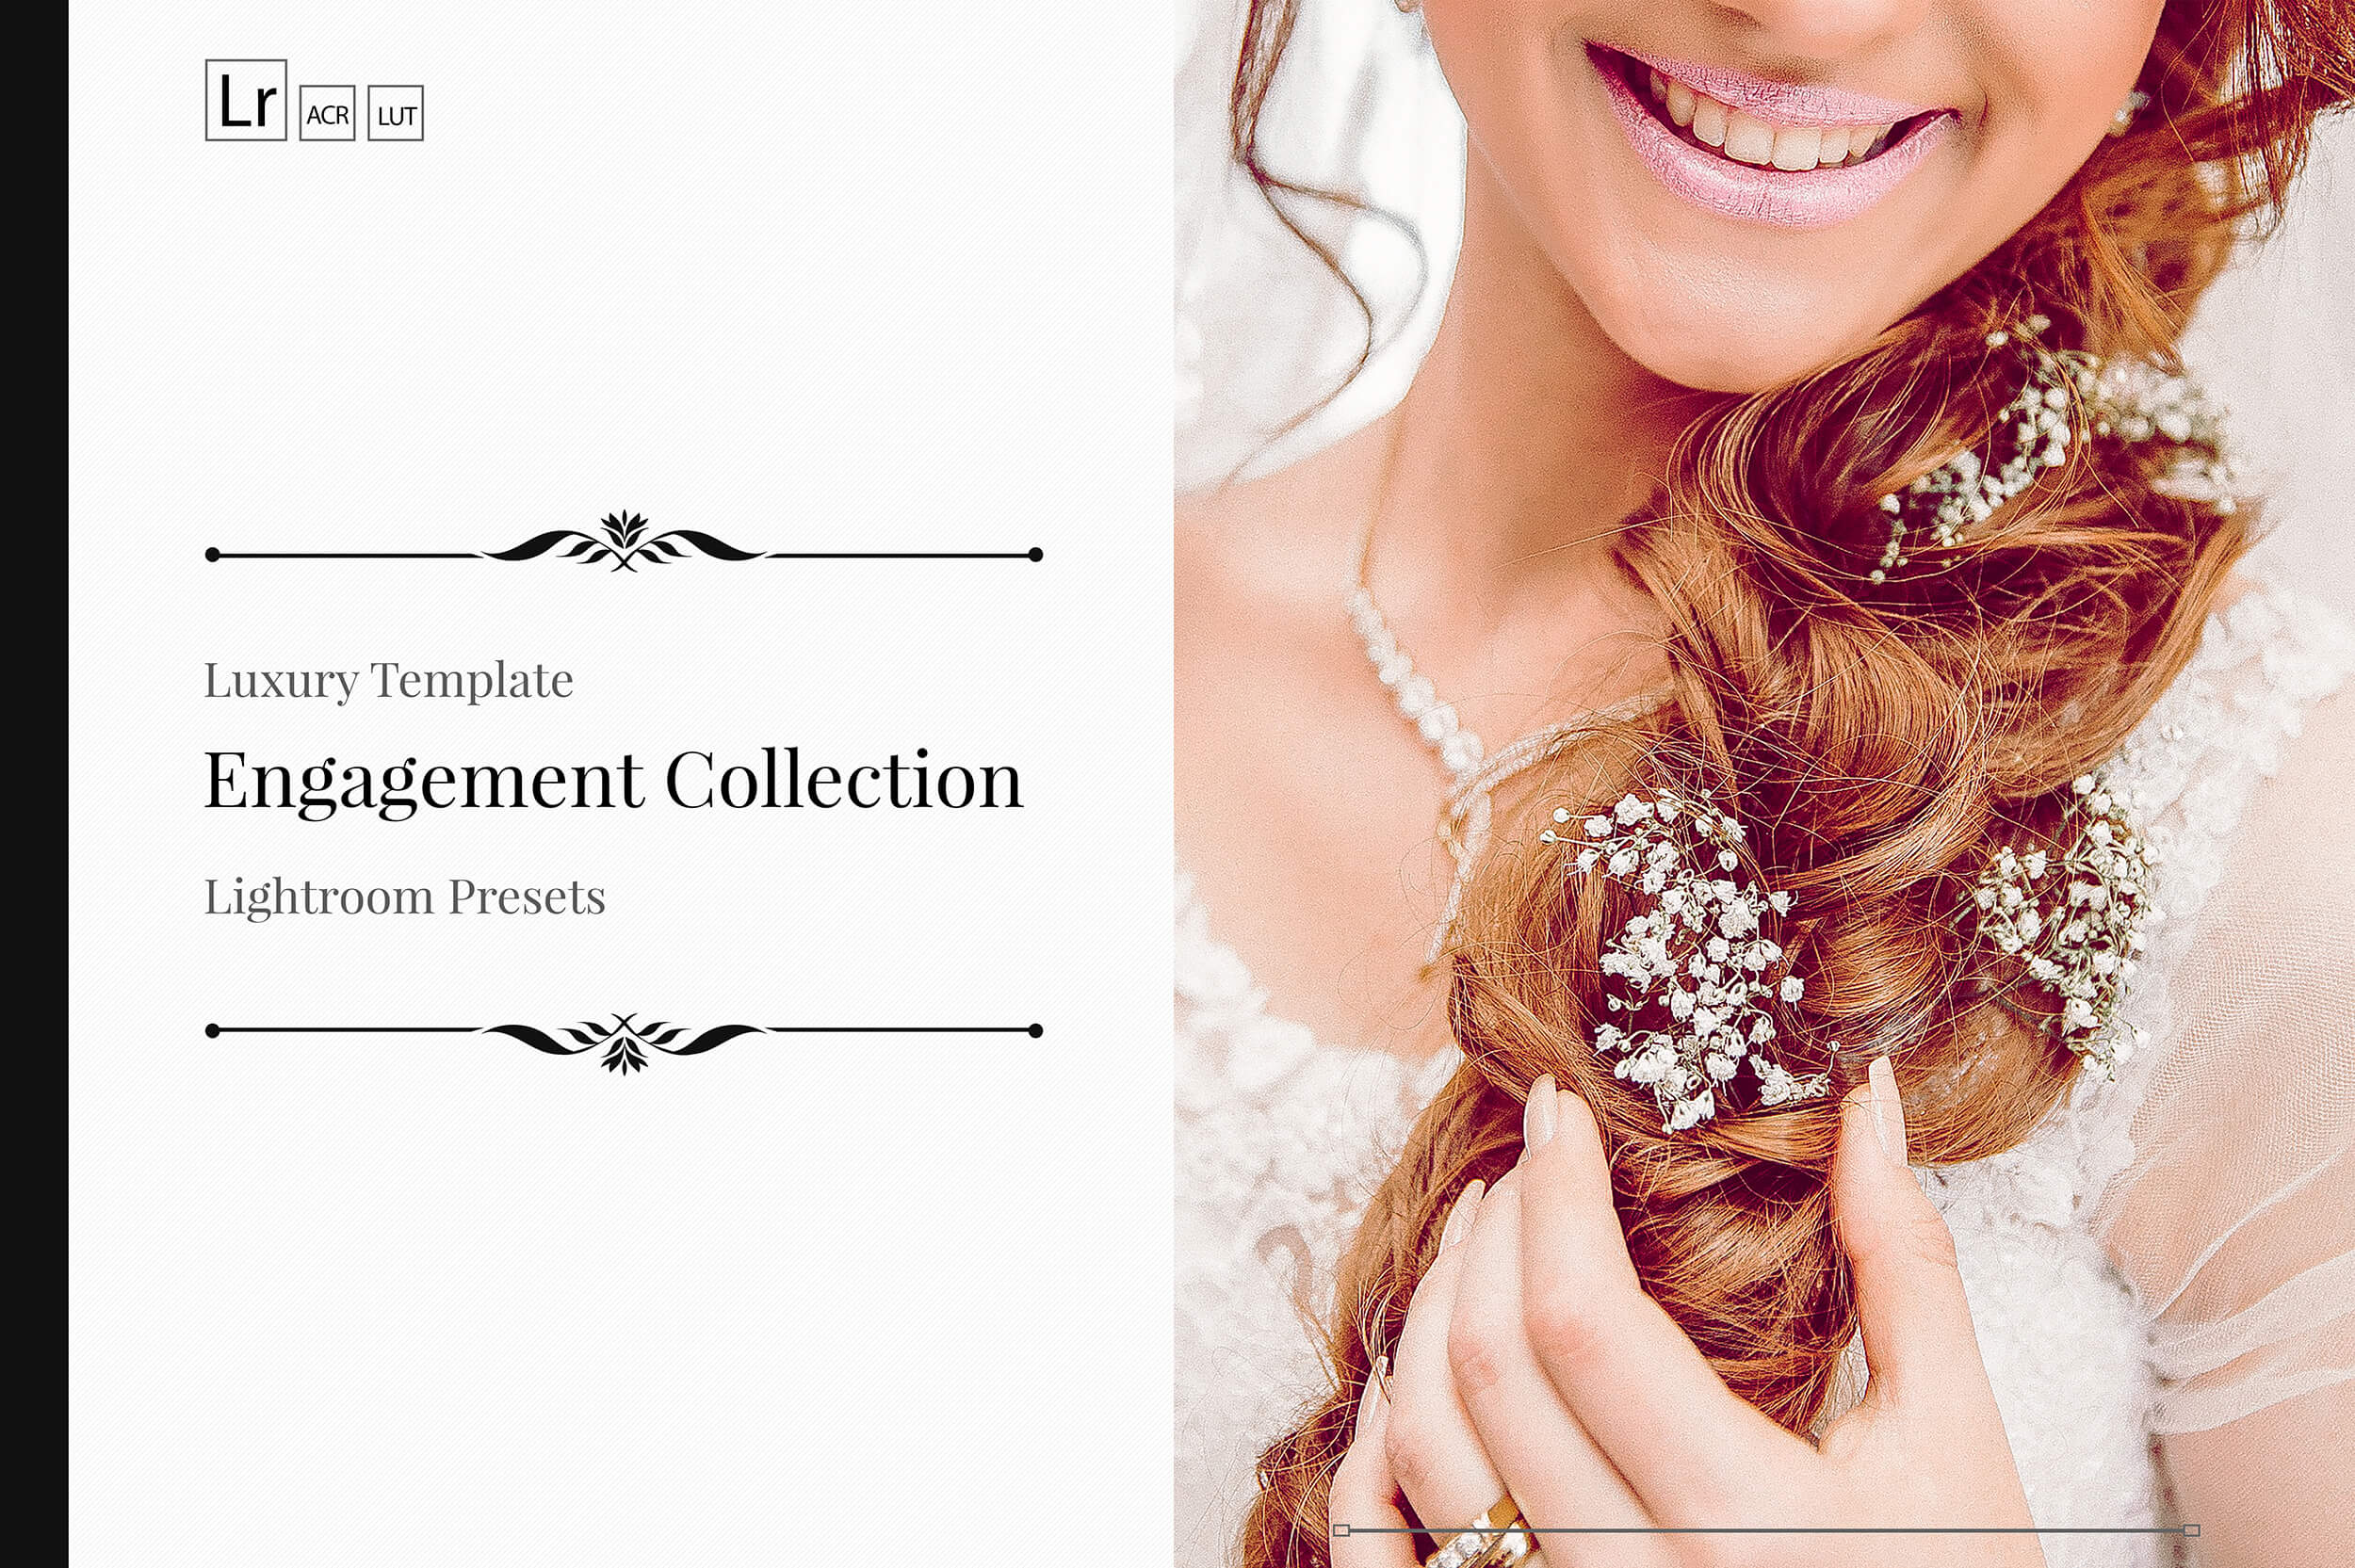 Engagement color grading lightroom presets theme example image 1